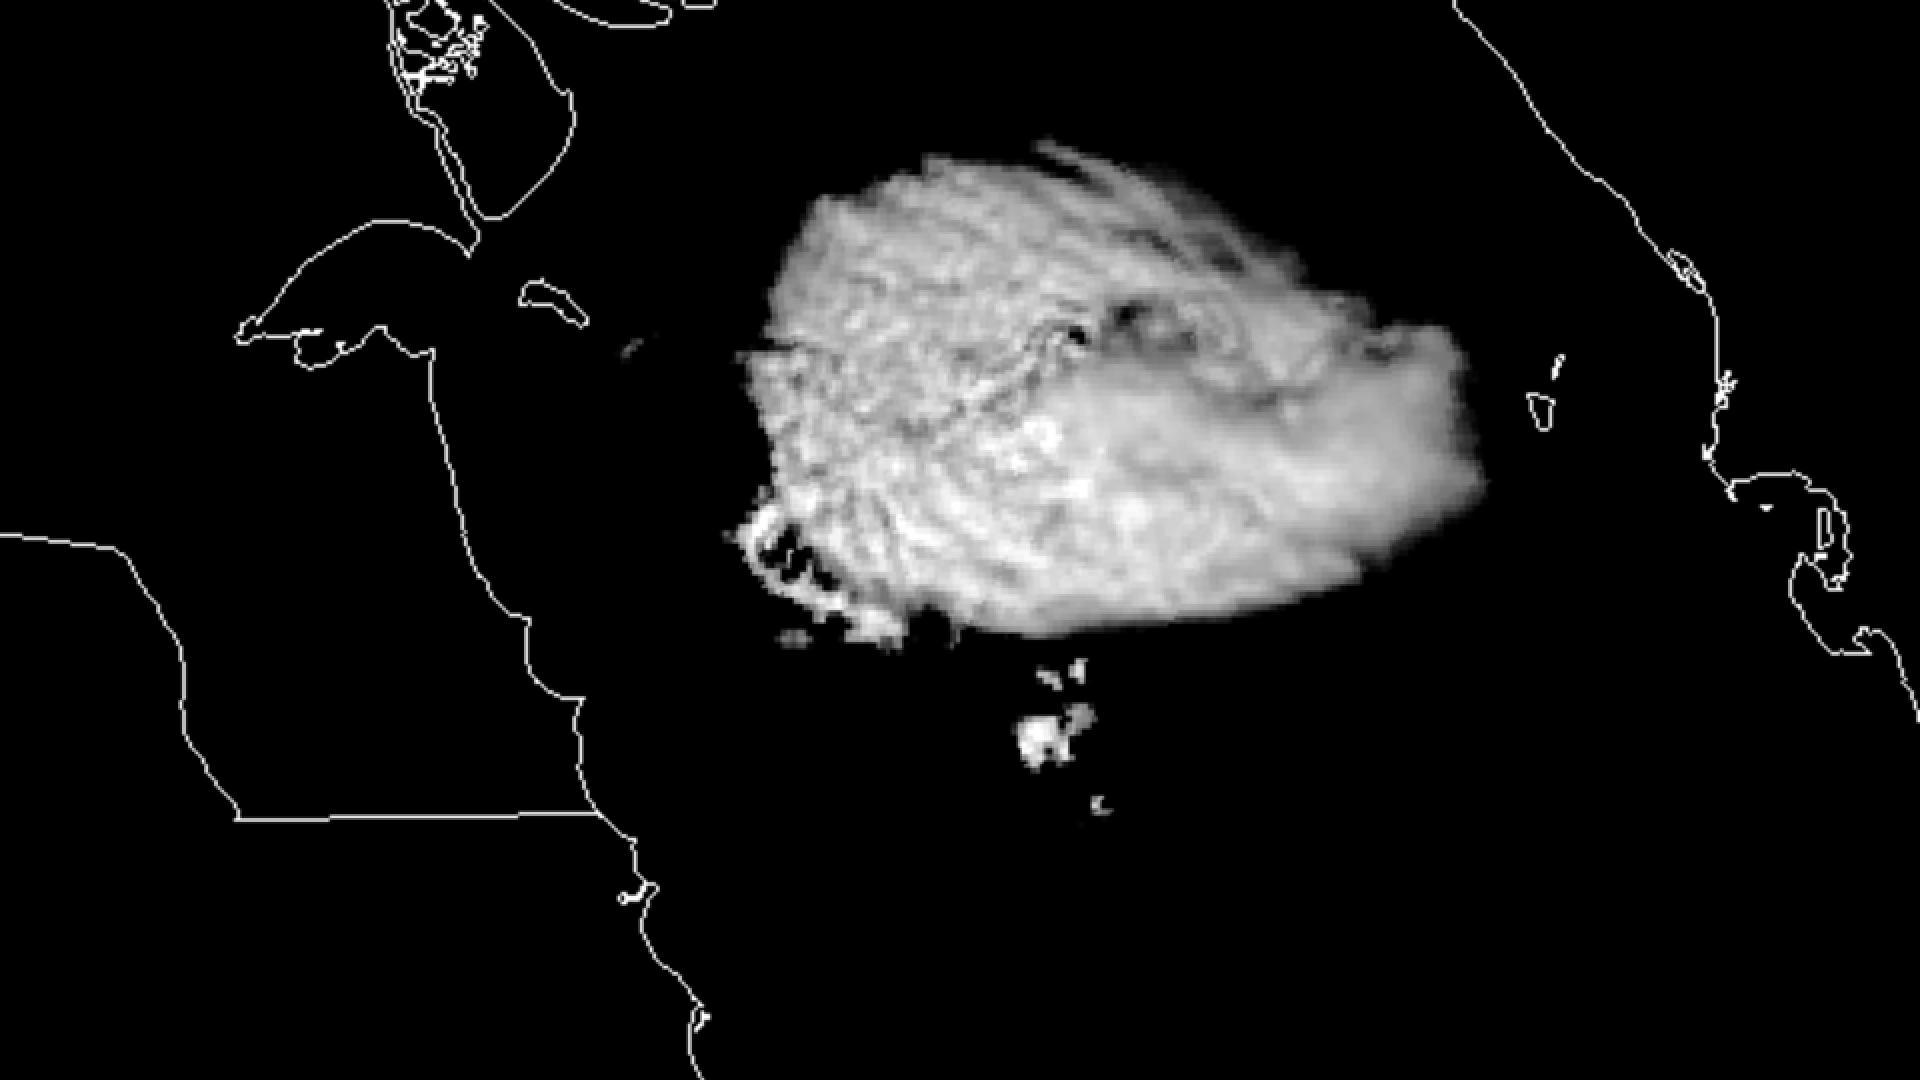 Isolated convective complex over the upper Arabian Gulf